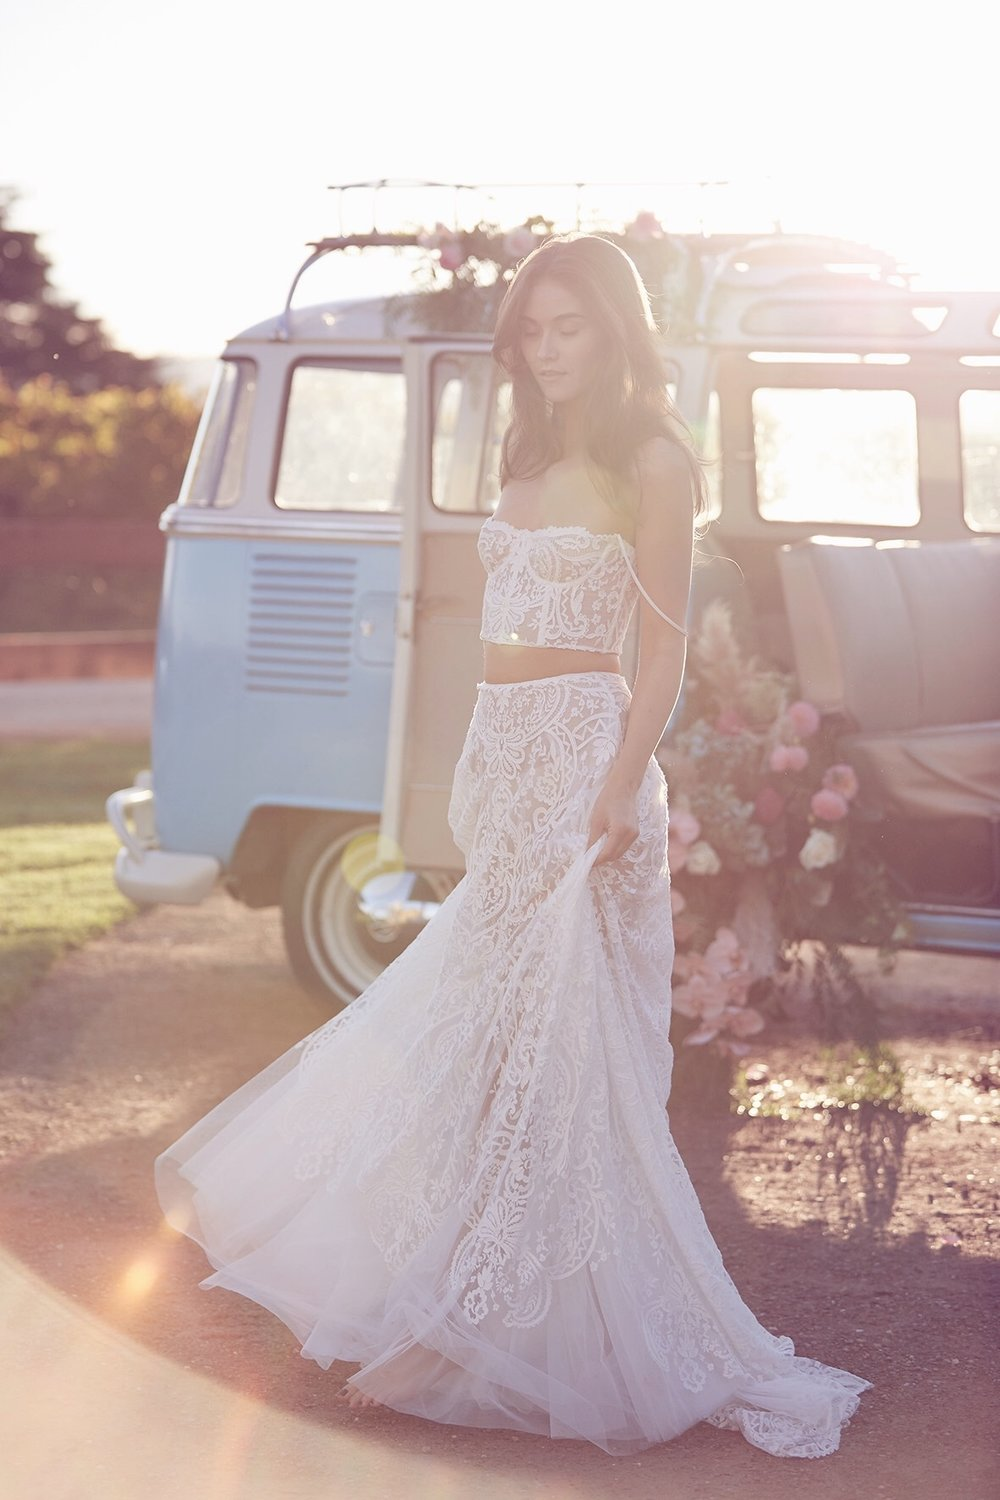 Kombi Flower Bomb by Lost In Love bridal editorial